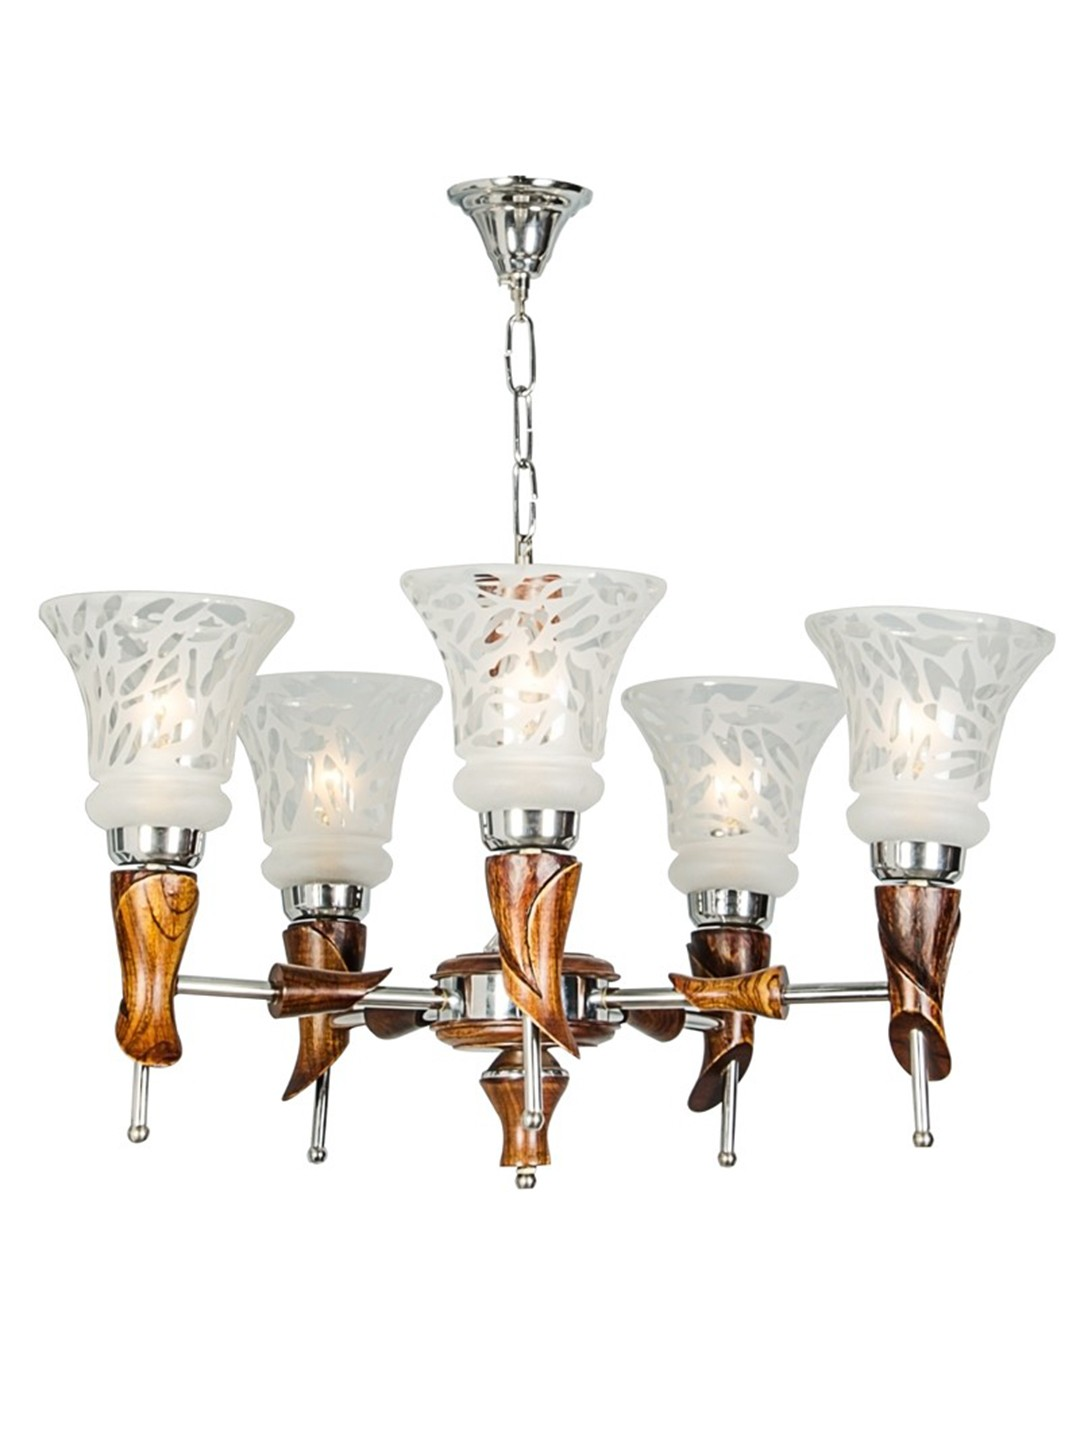 Aston Wood 5 Light Chandelier